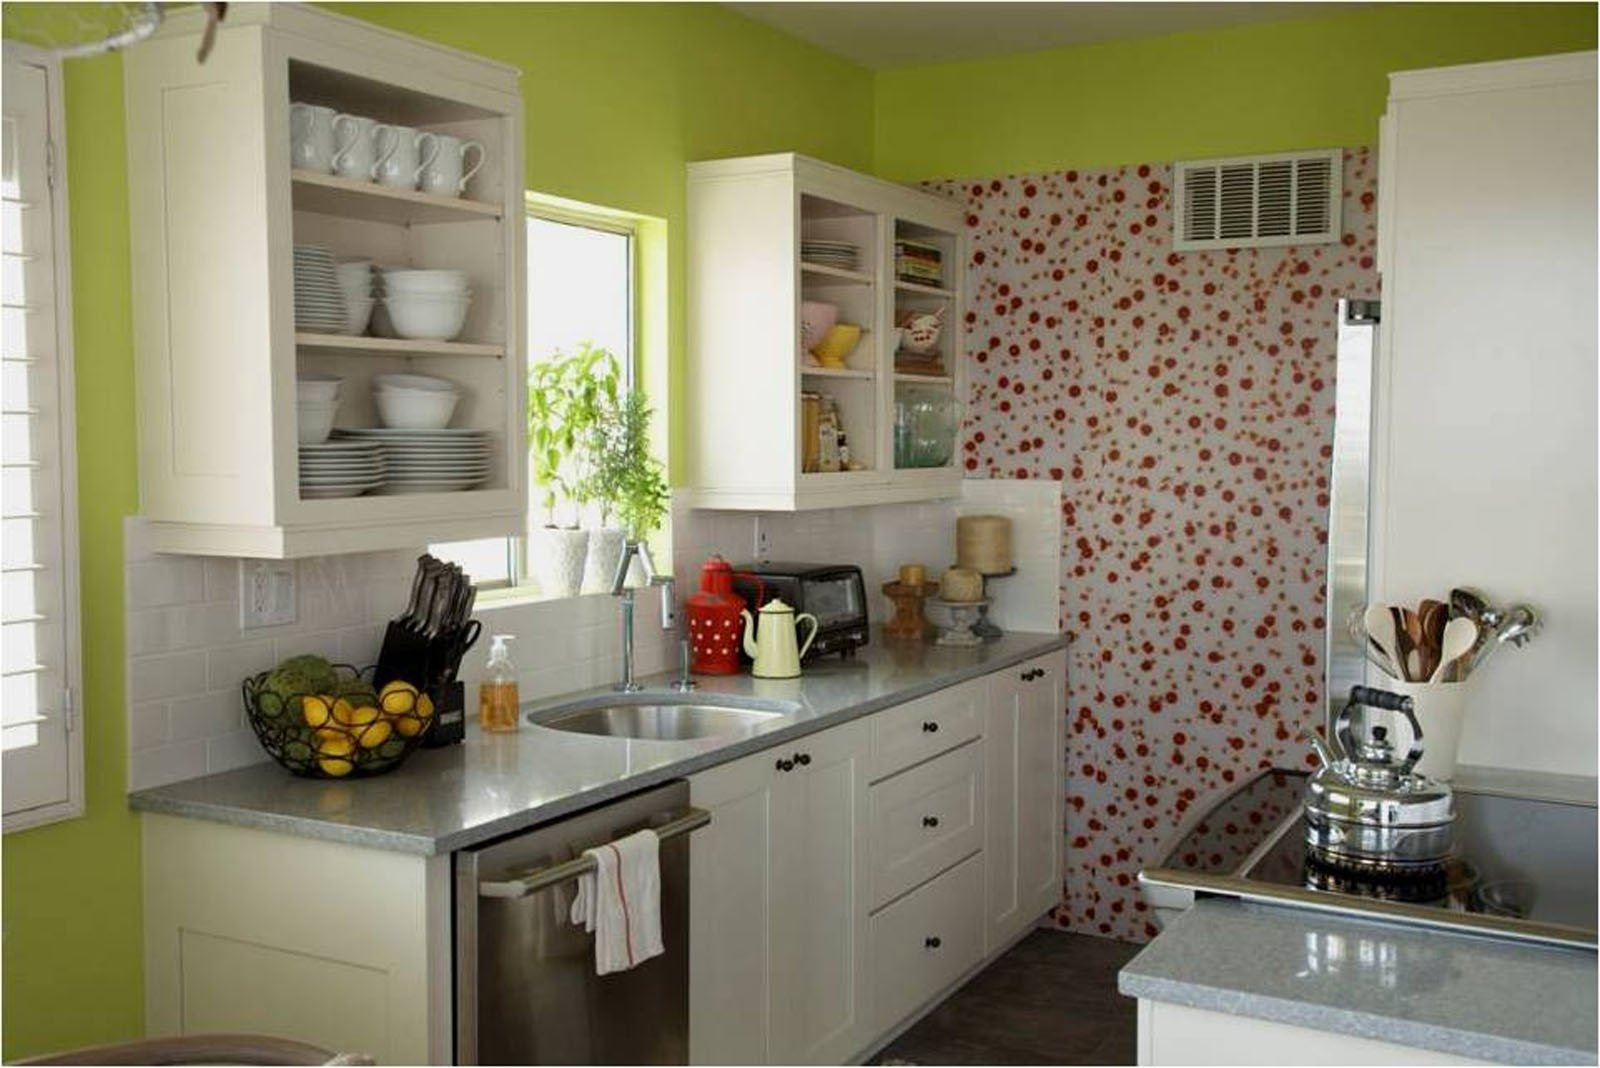 10 Best Small Kitchen Ideas On A Budget small kitchen ideas captivating for cabinets trends and makeovers on 2020